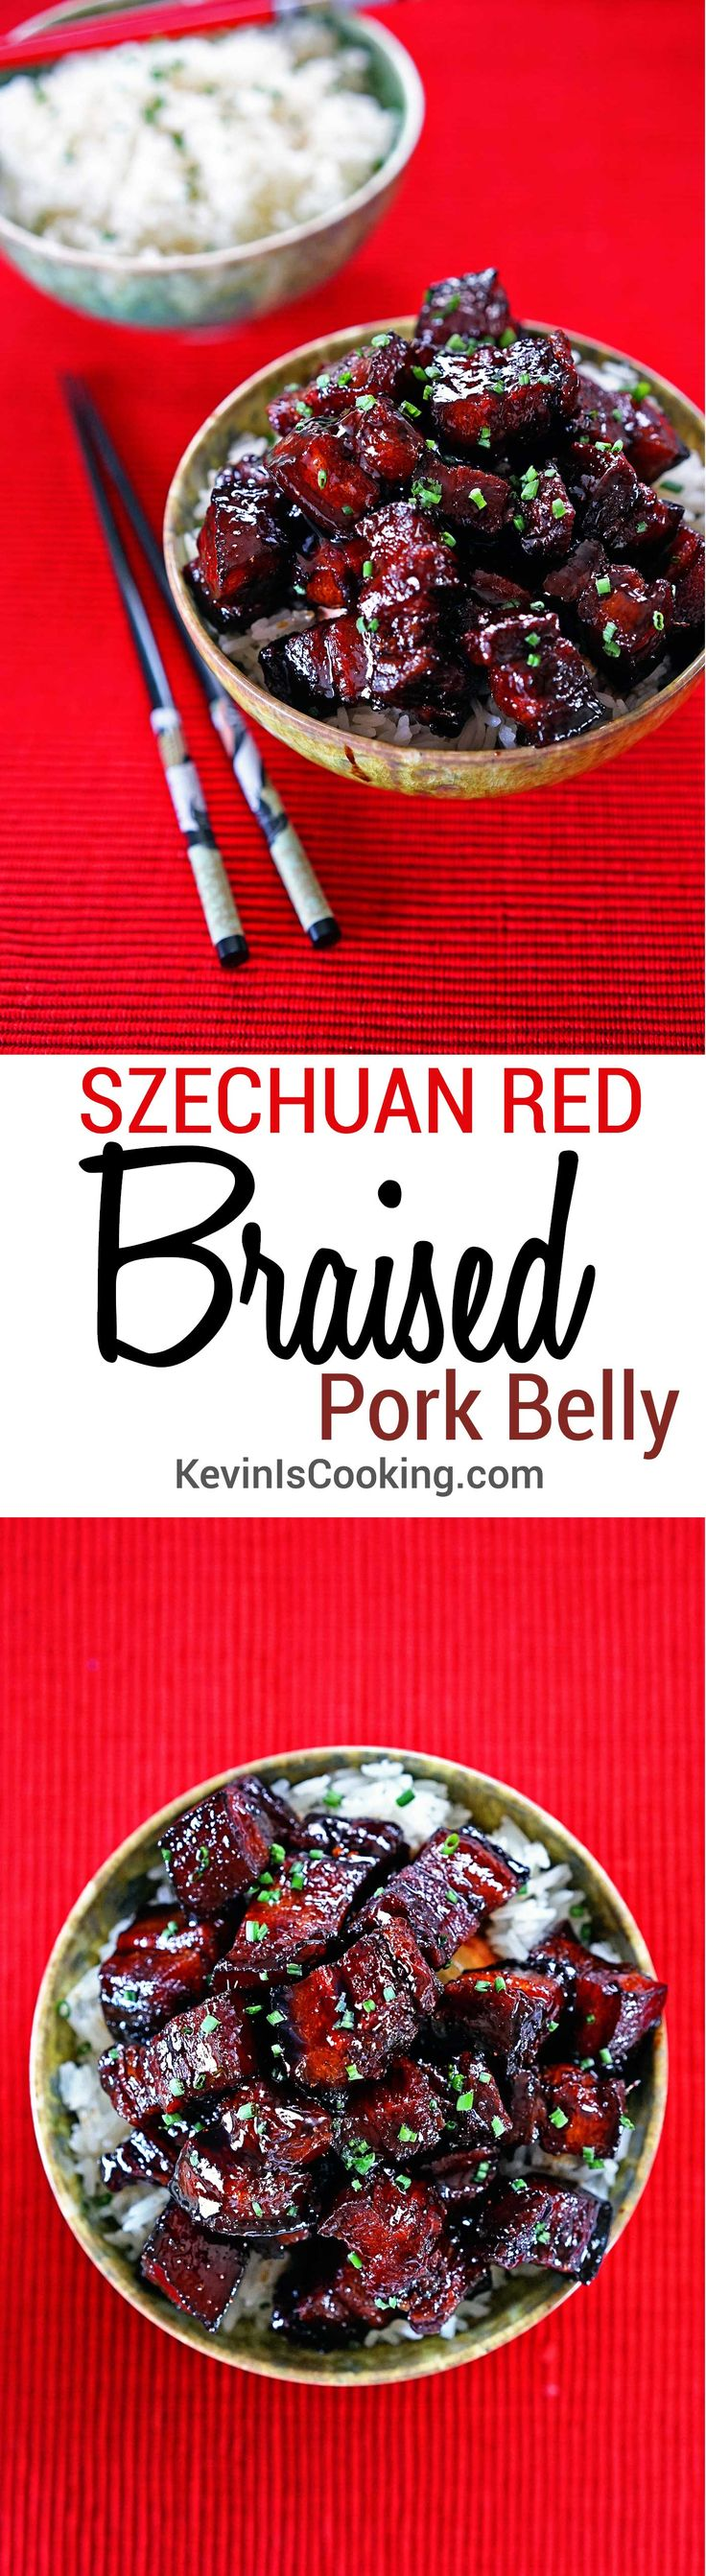 Szechuan Red Braised Pork Belly. www.keviniscooking.com                                                                                                                                                                                 More